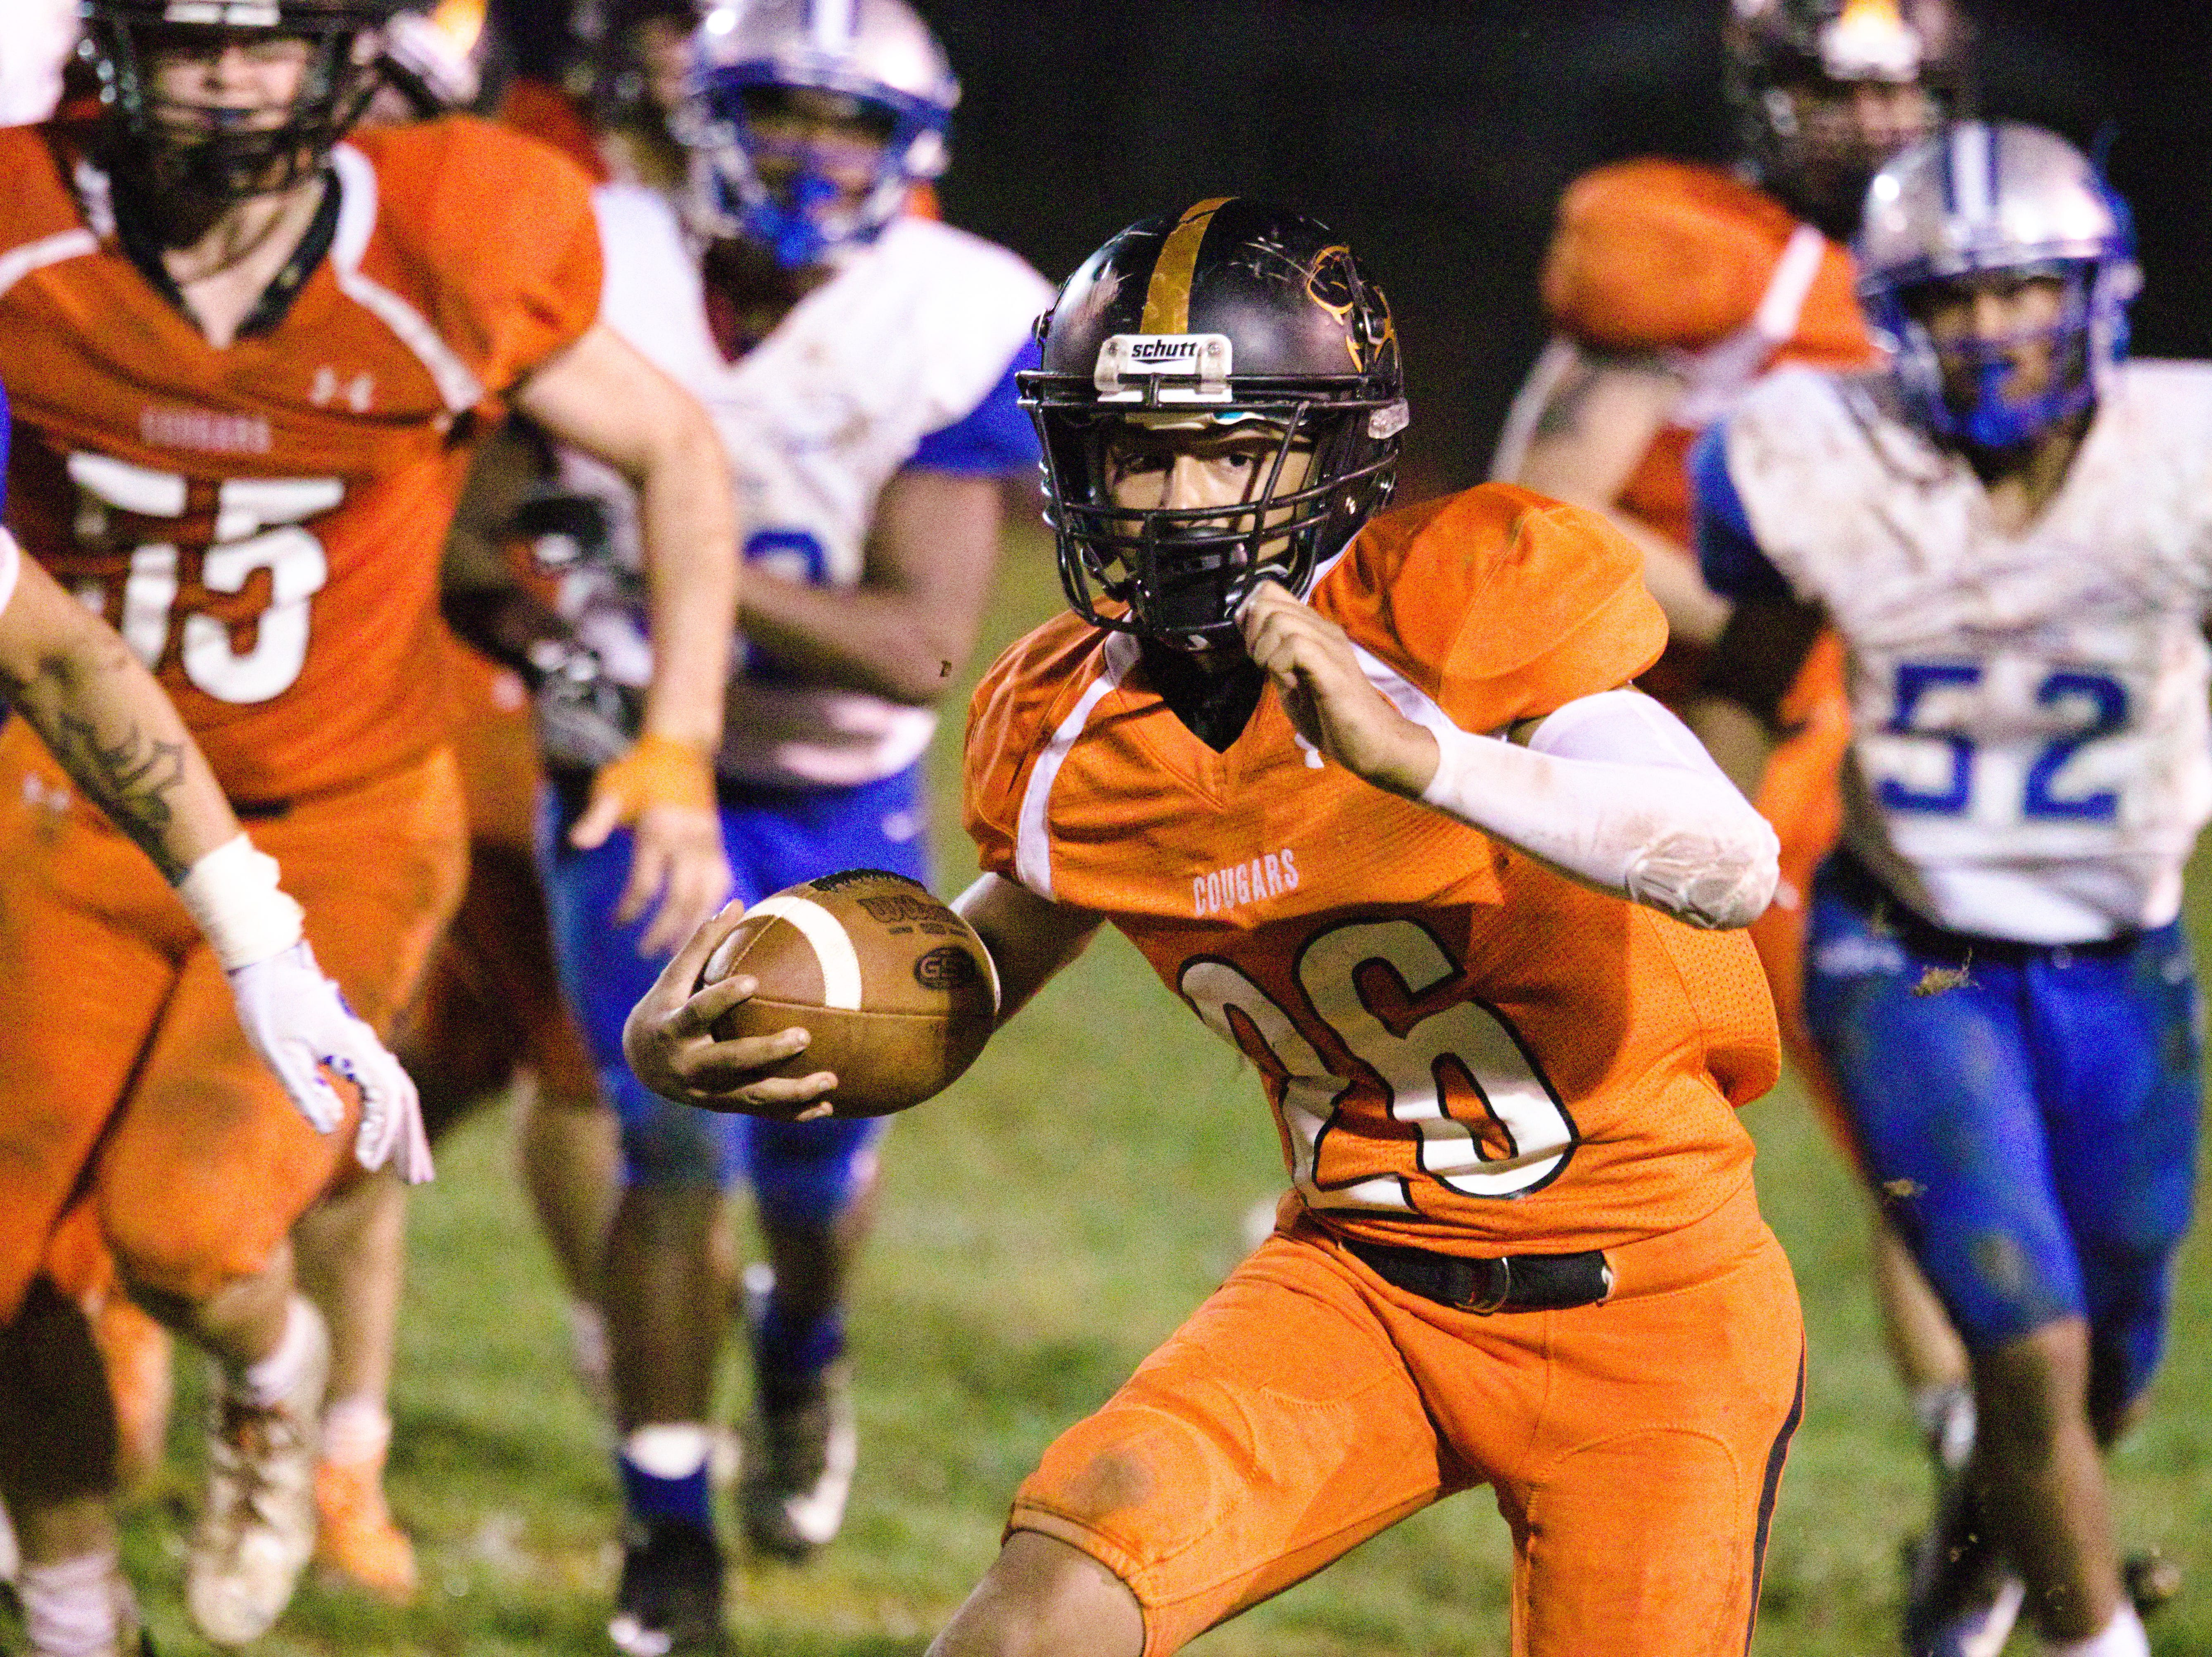 Palmyra's Caleb Hawkins rushed for 198 yards and three TDs in the Cougars' 47-7 win over Boiling Springs.